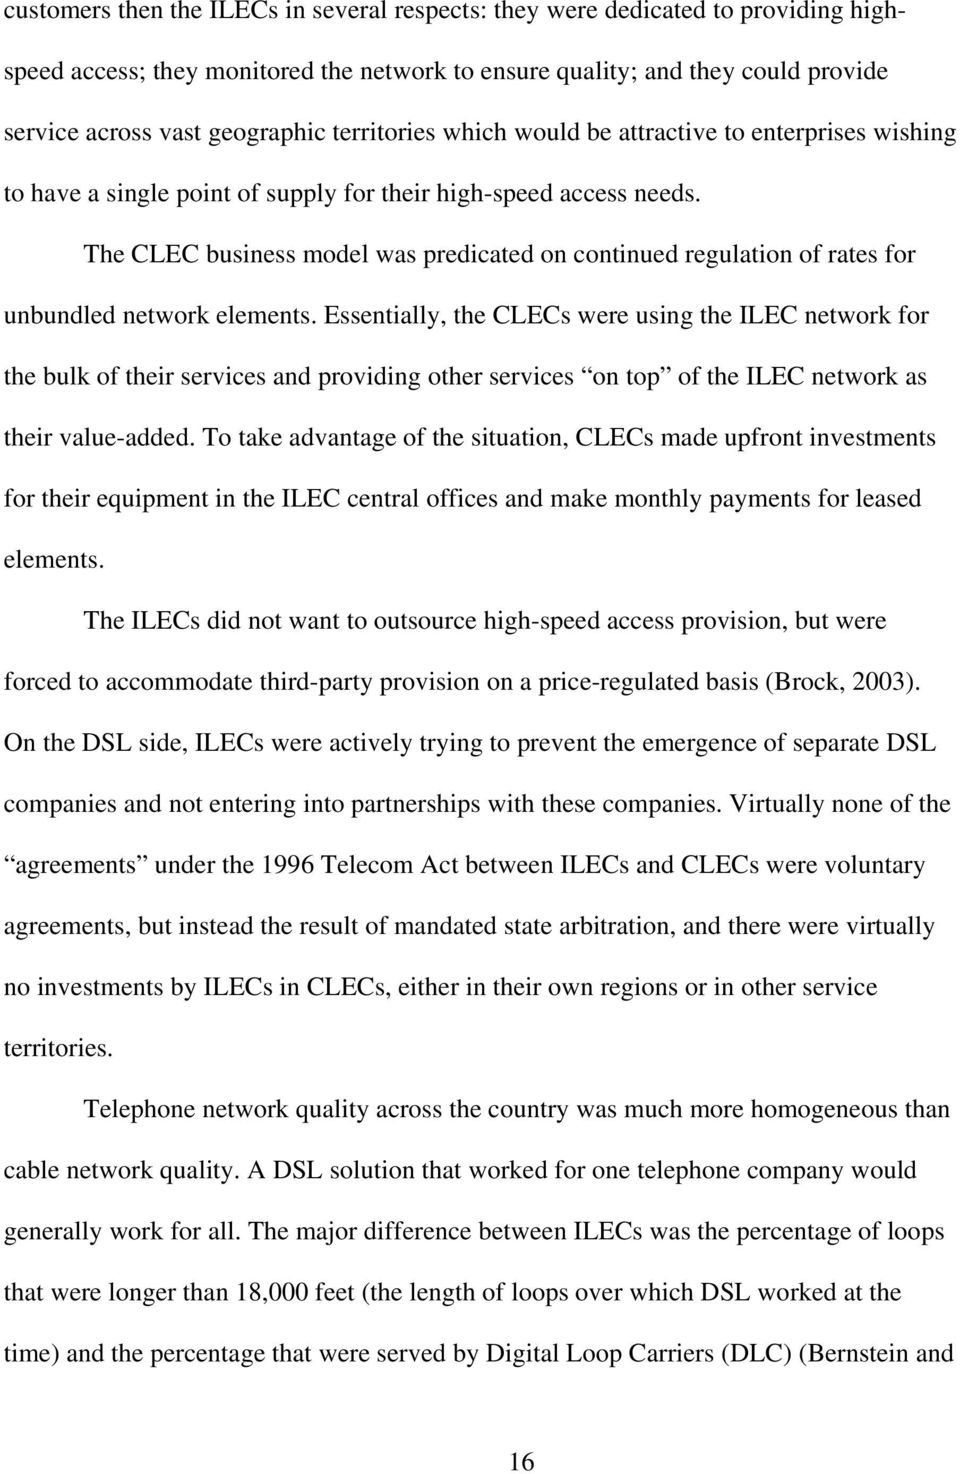 The CLEC business model was predicated on continued regulation of rates for unbundled network elements.